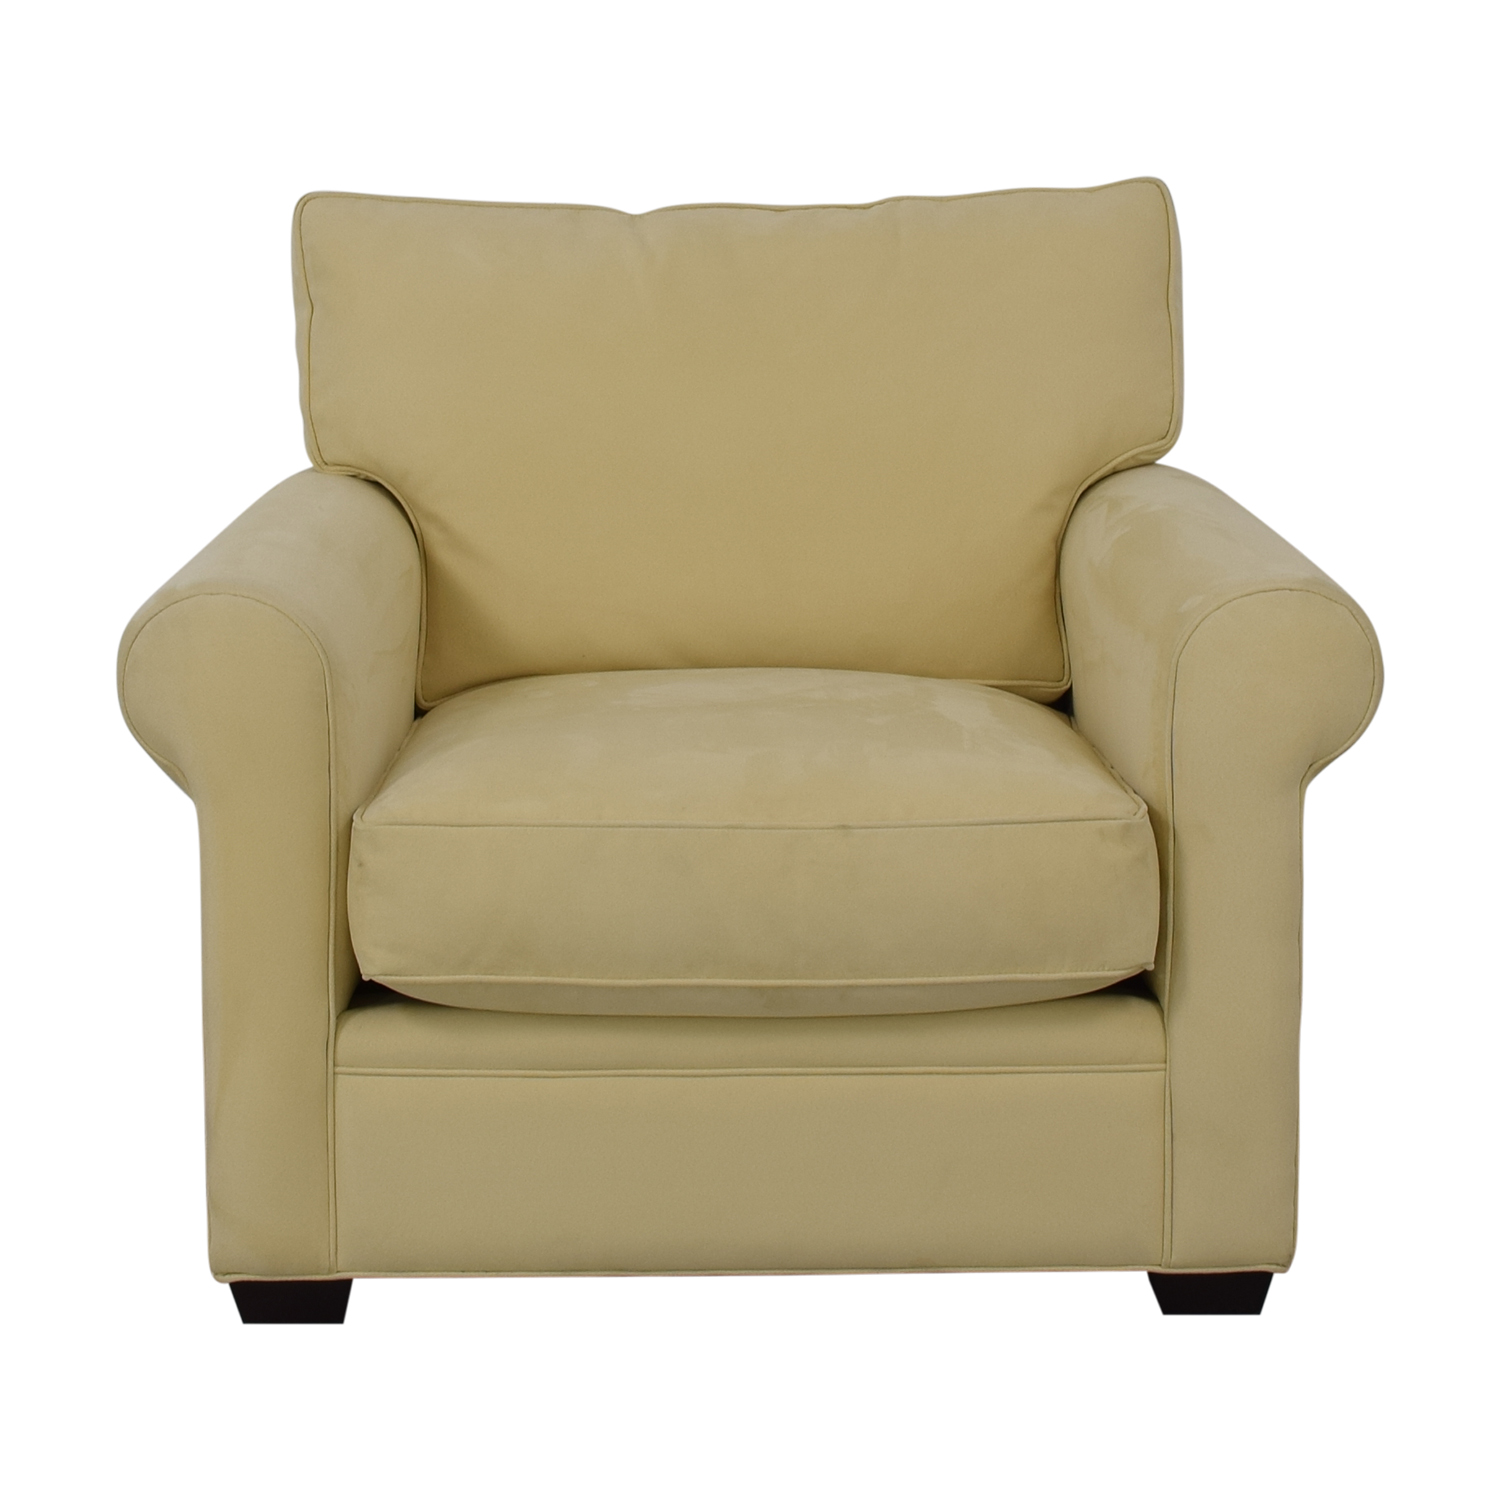 Crate & Barrel Yellow Oversized Accent Chair sale